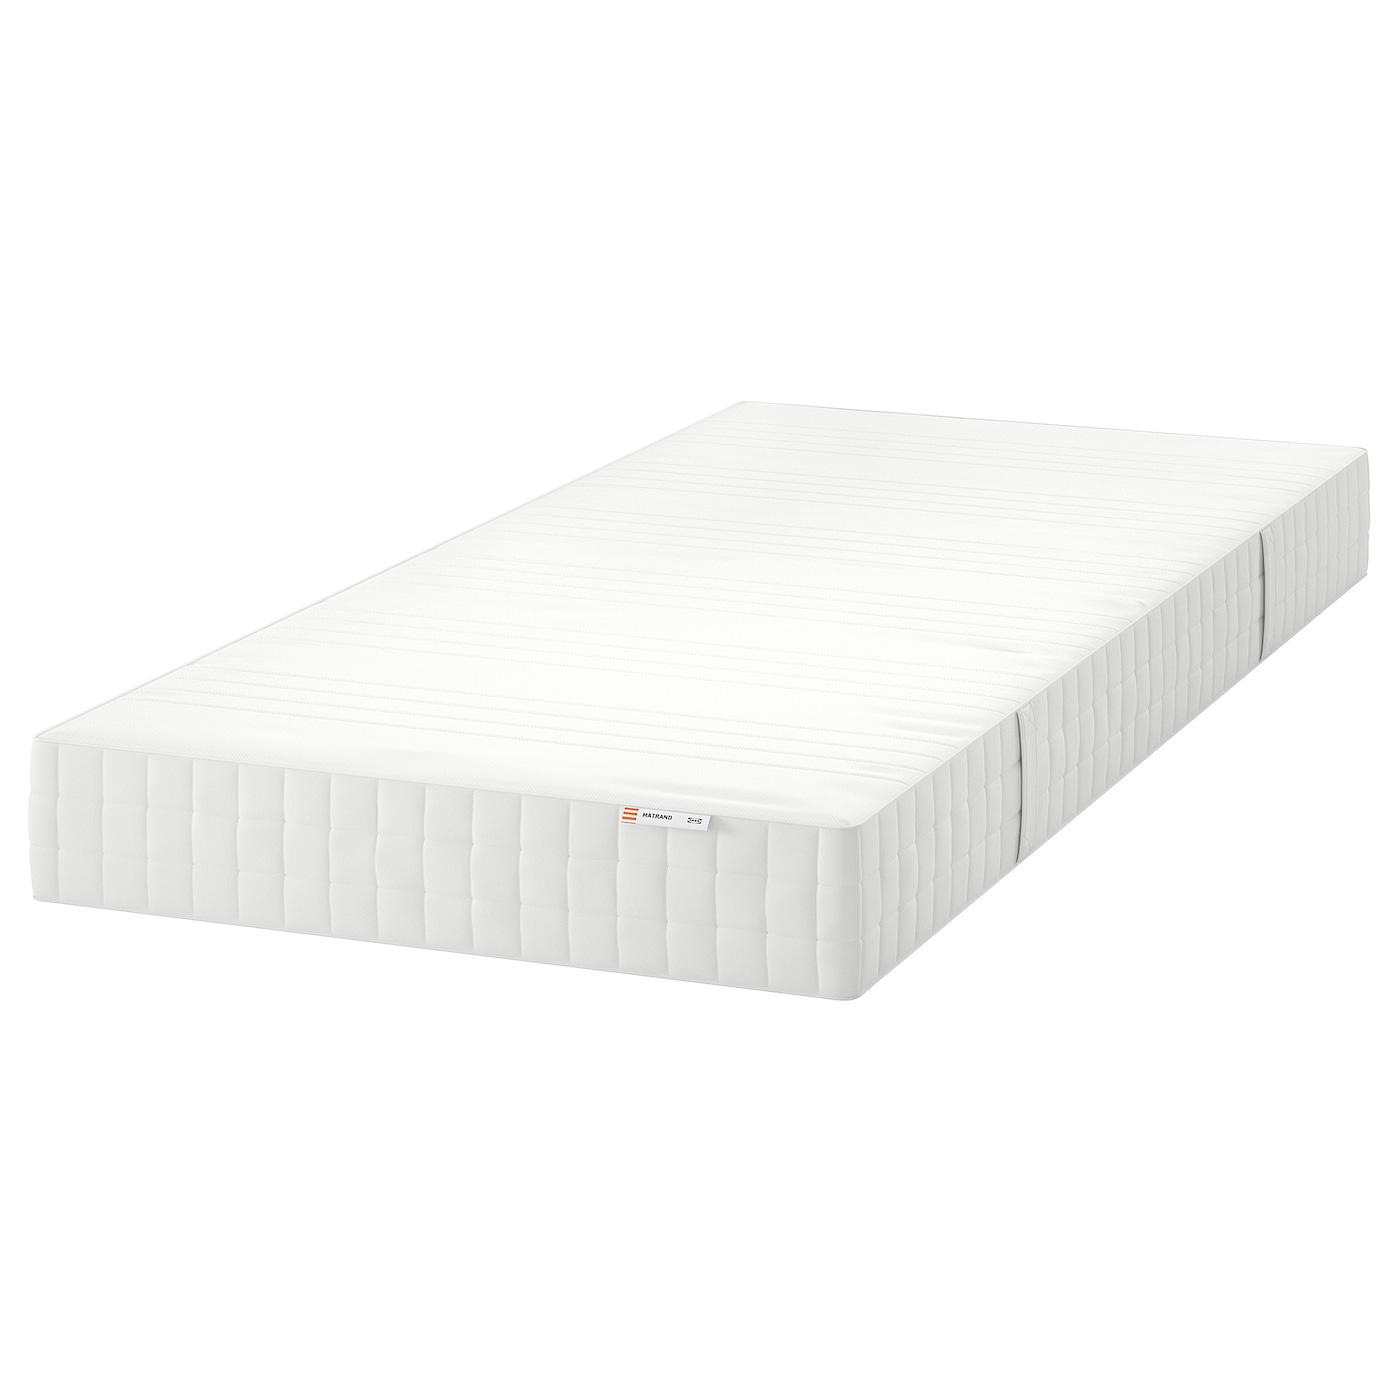 Matrand Memory Foam Mattress Firm